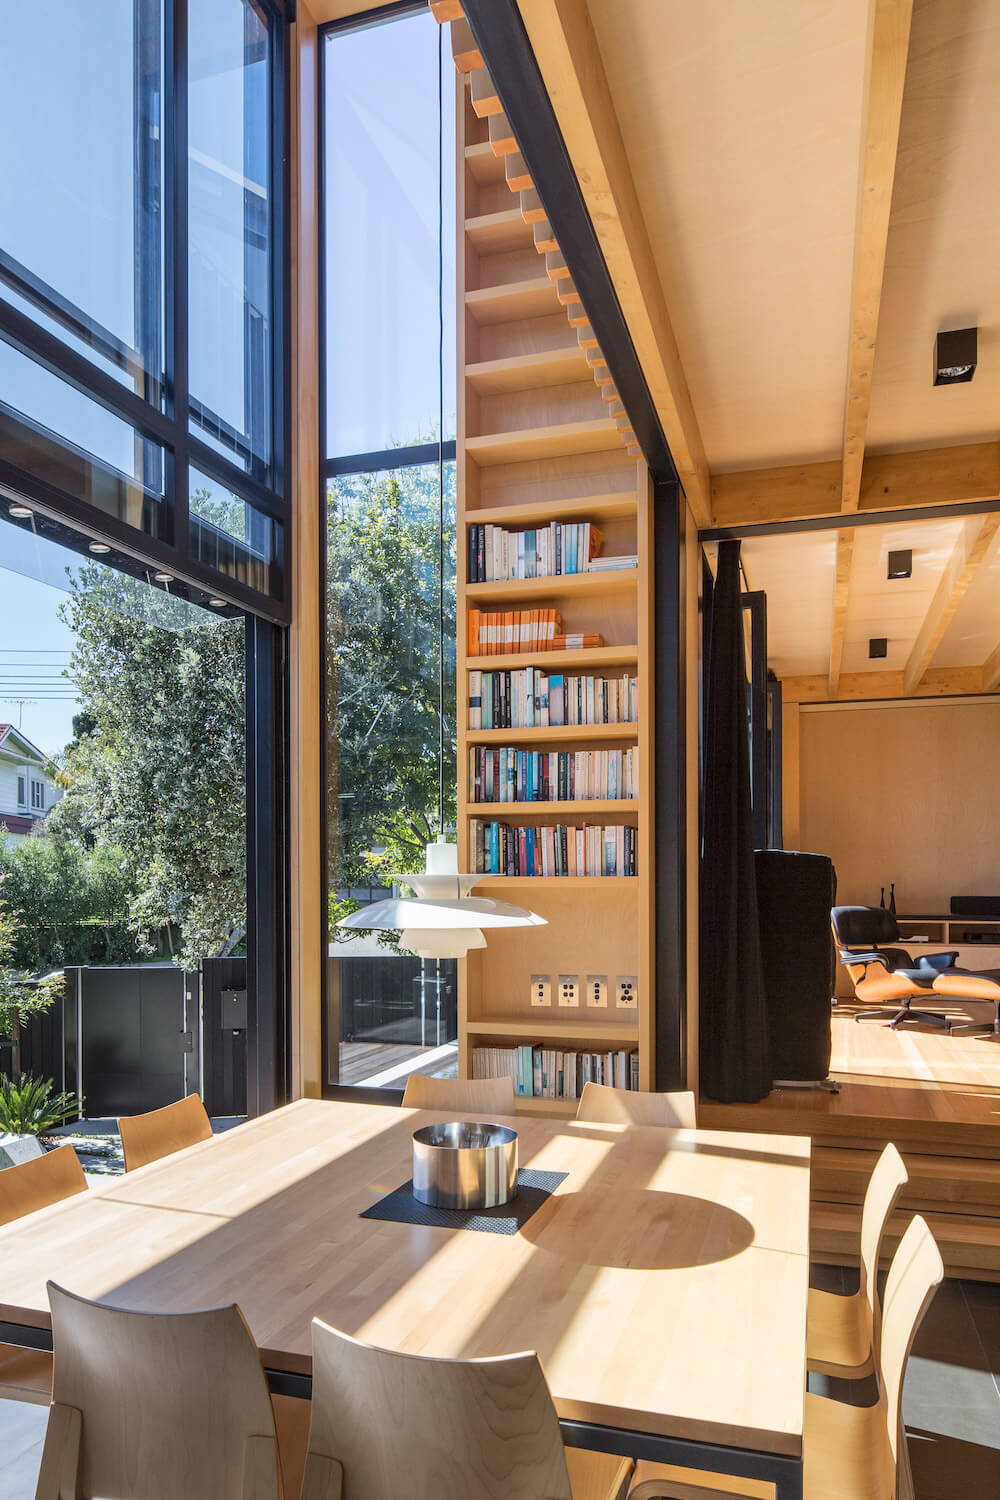 Boatsheds by Strachan Group Architects and Rachael Rush